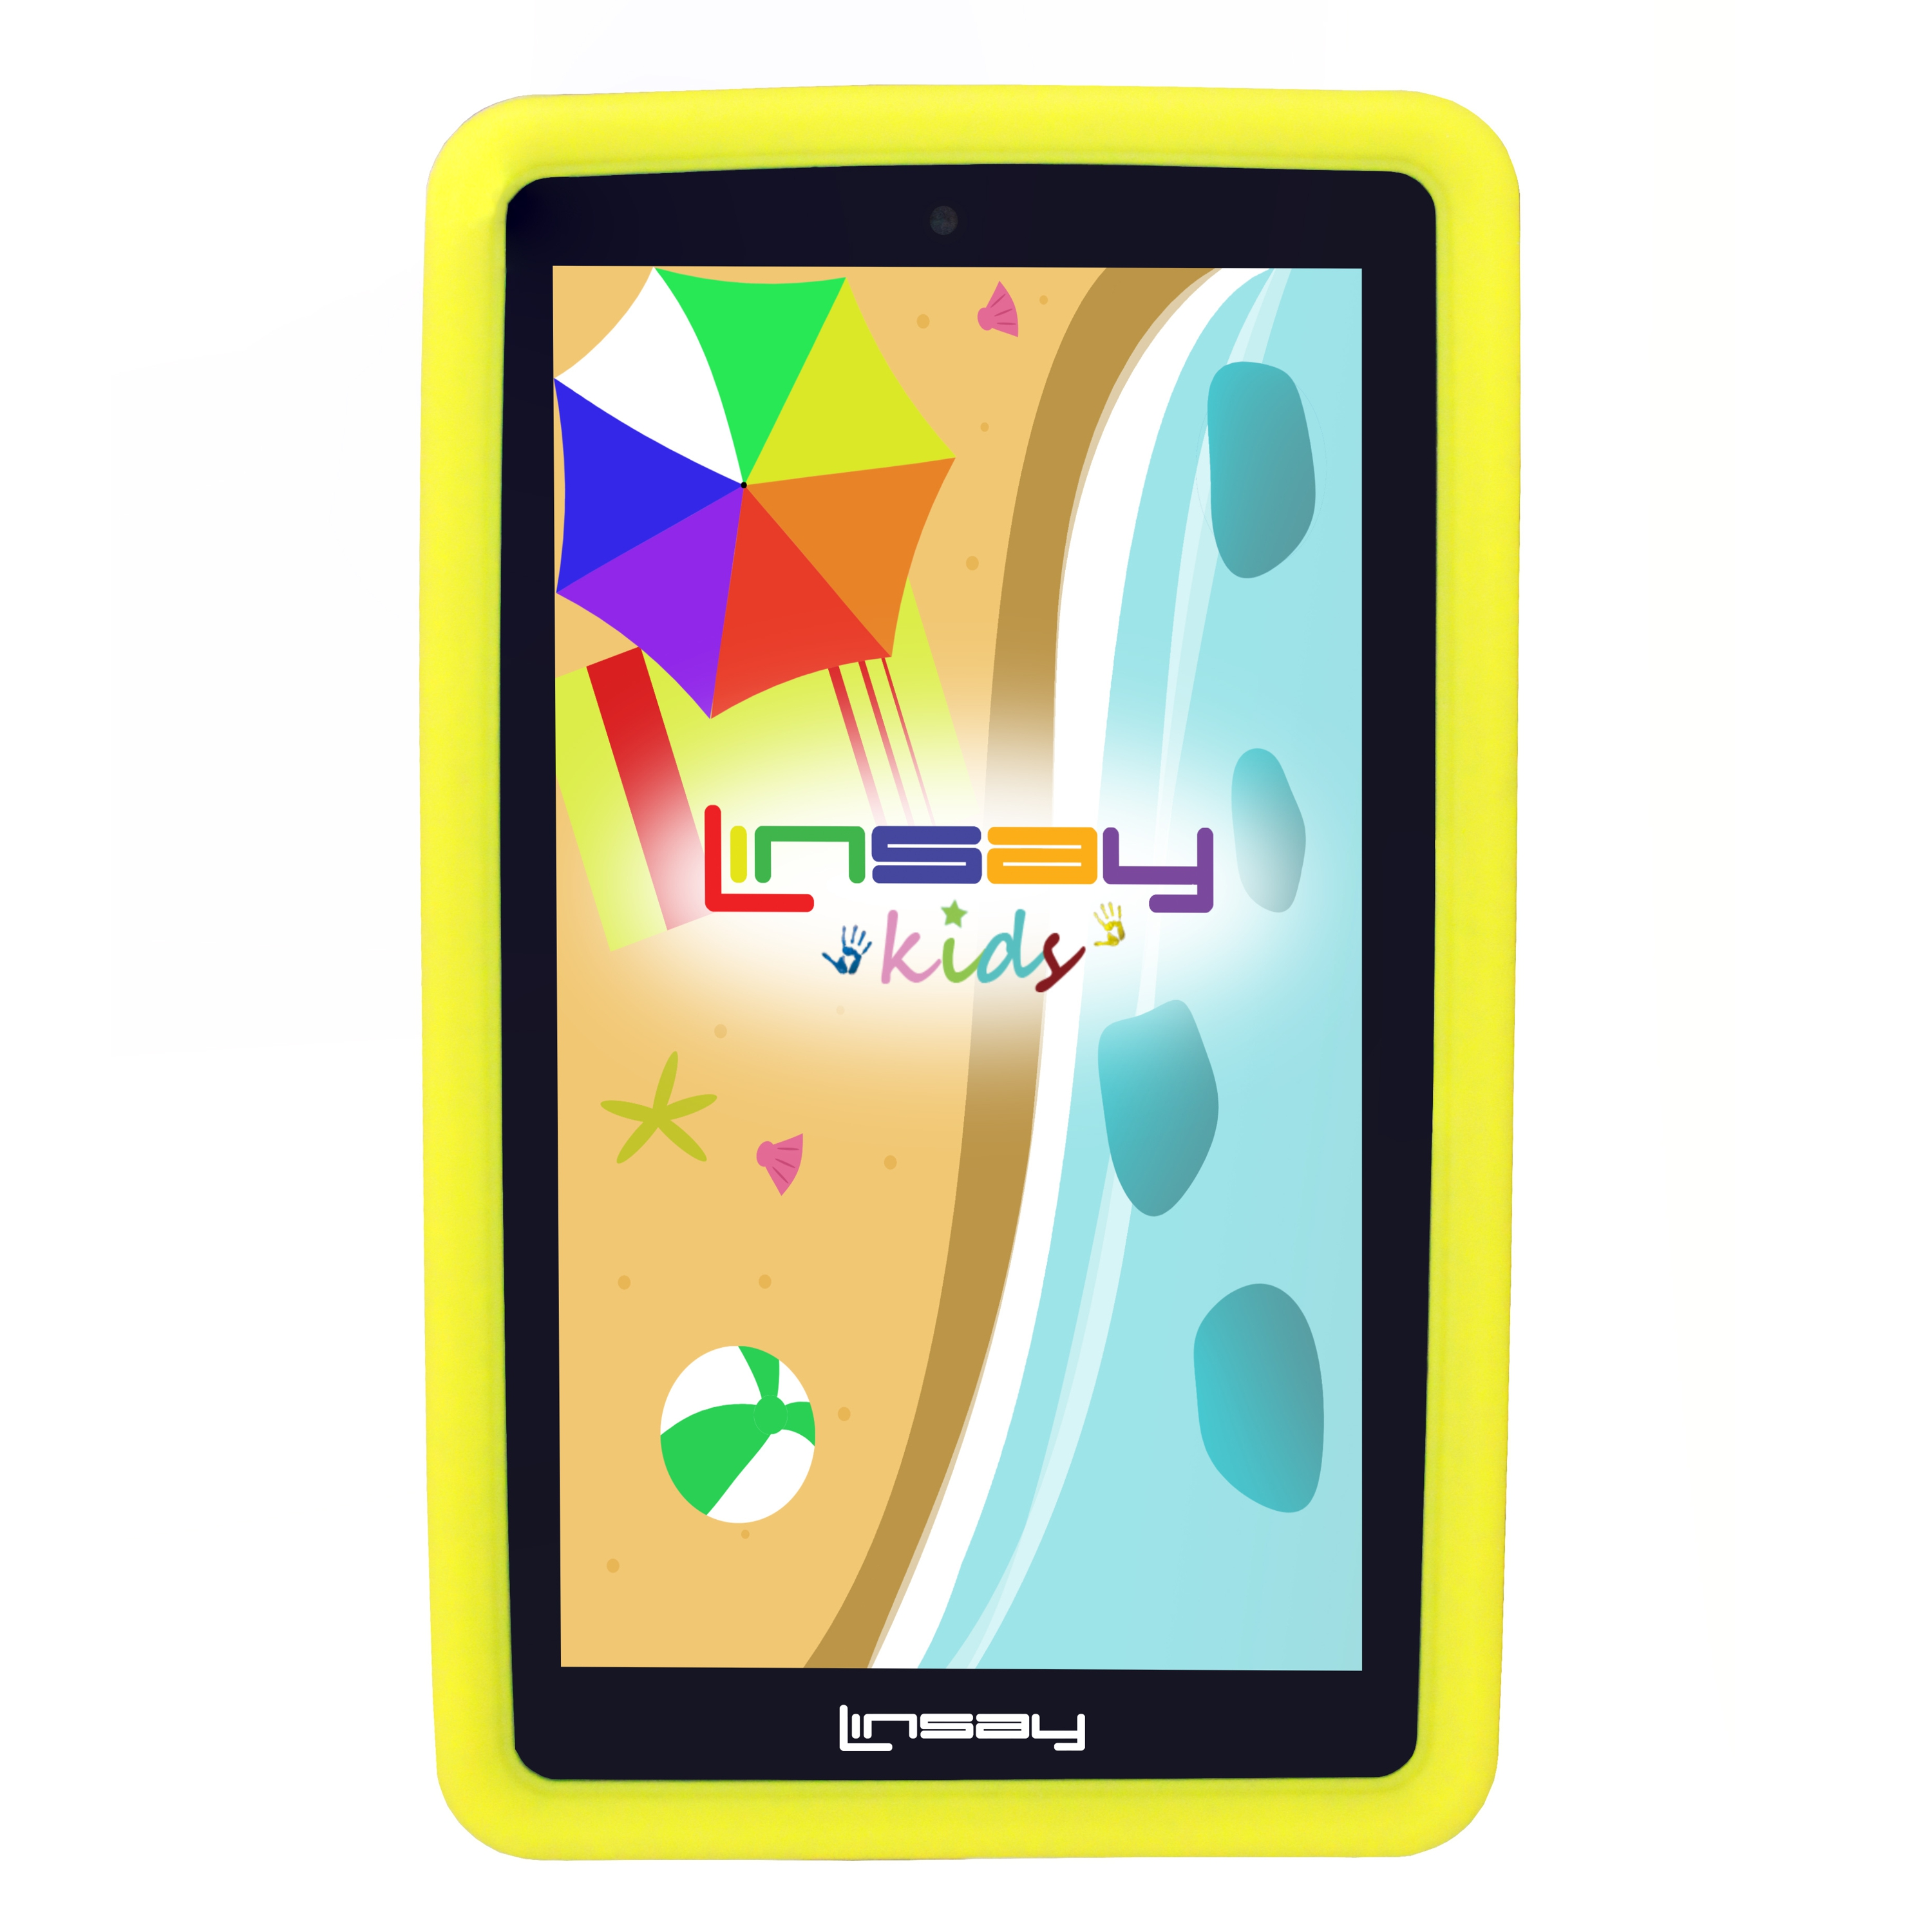 "LINSAY Kids Funny Tab 7"" 1280x800 IPS Touchscreen Tablet PC Featuring Android 4.4.2 (KitKat) Operating System Bundle with Yellow Kids Defender Case"